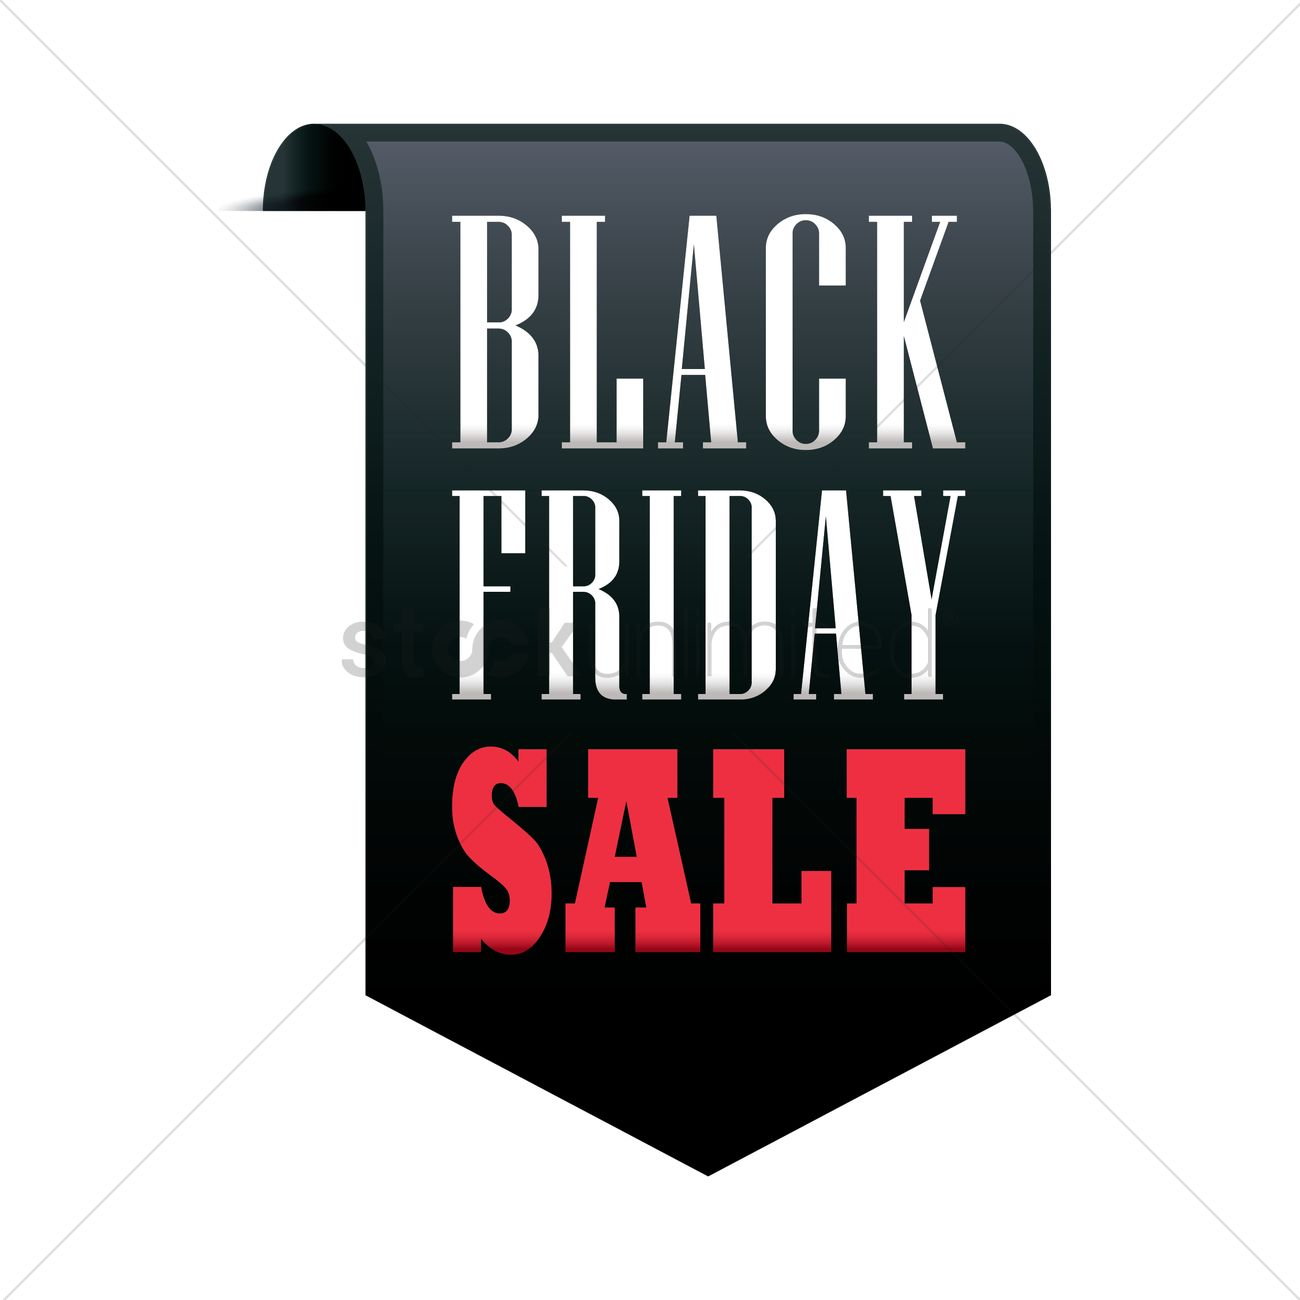 black friday sale banner vector image 1708886 stockunlimited rh stockunlimited com black friday sale clip art black friday clip art free